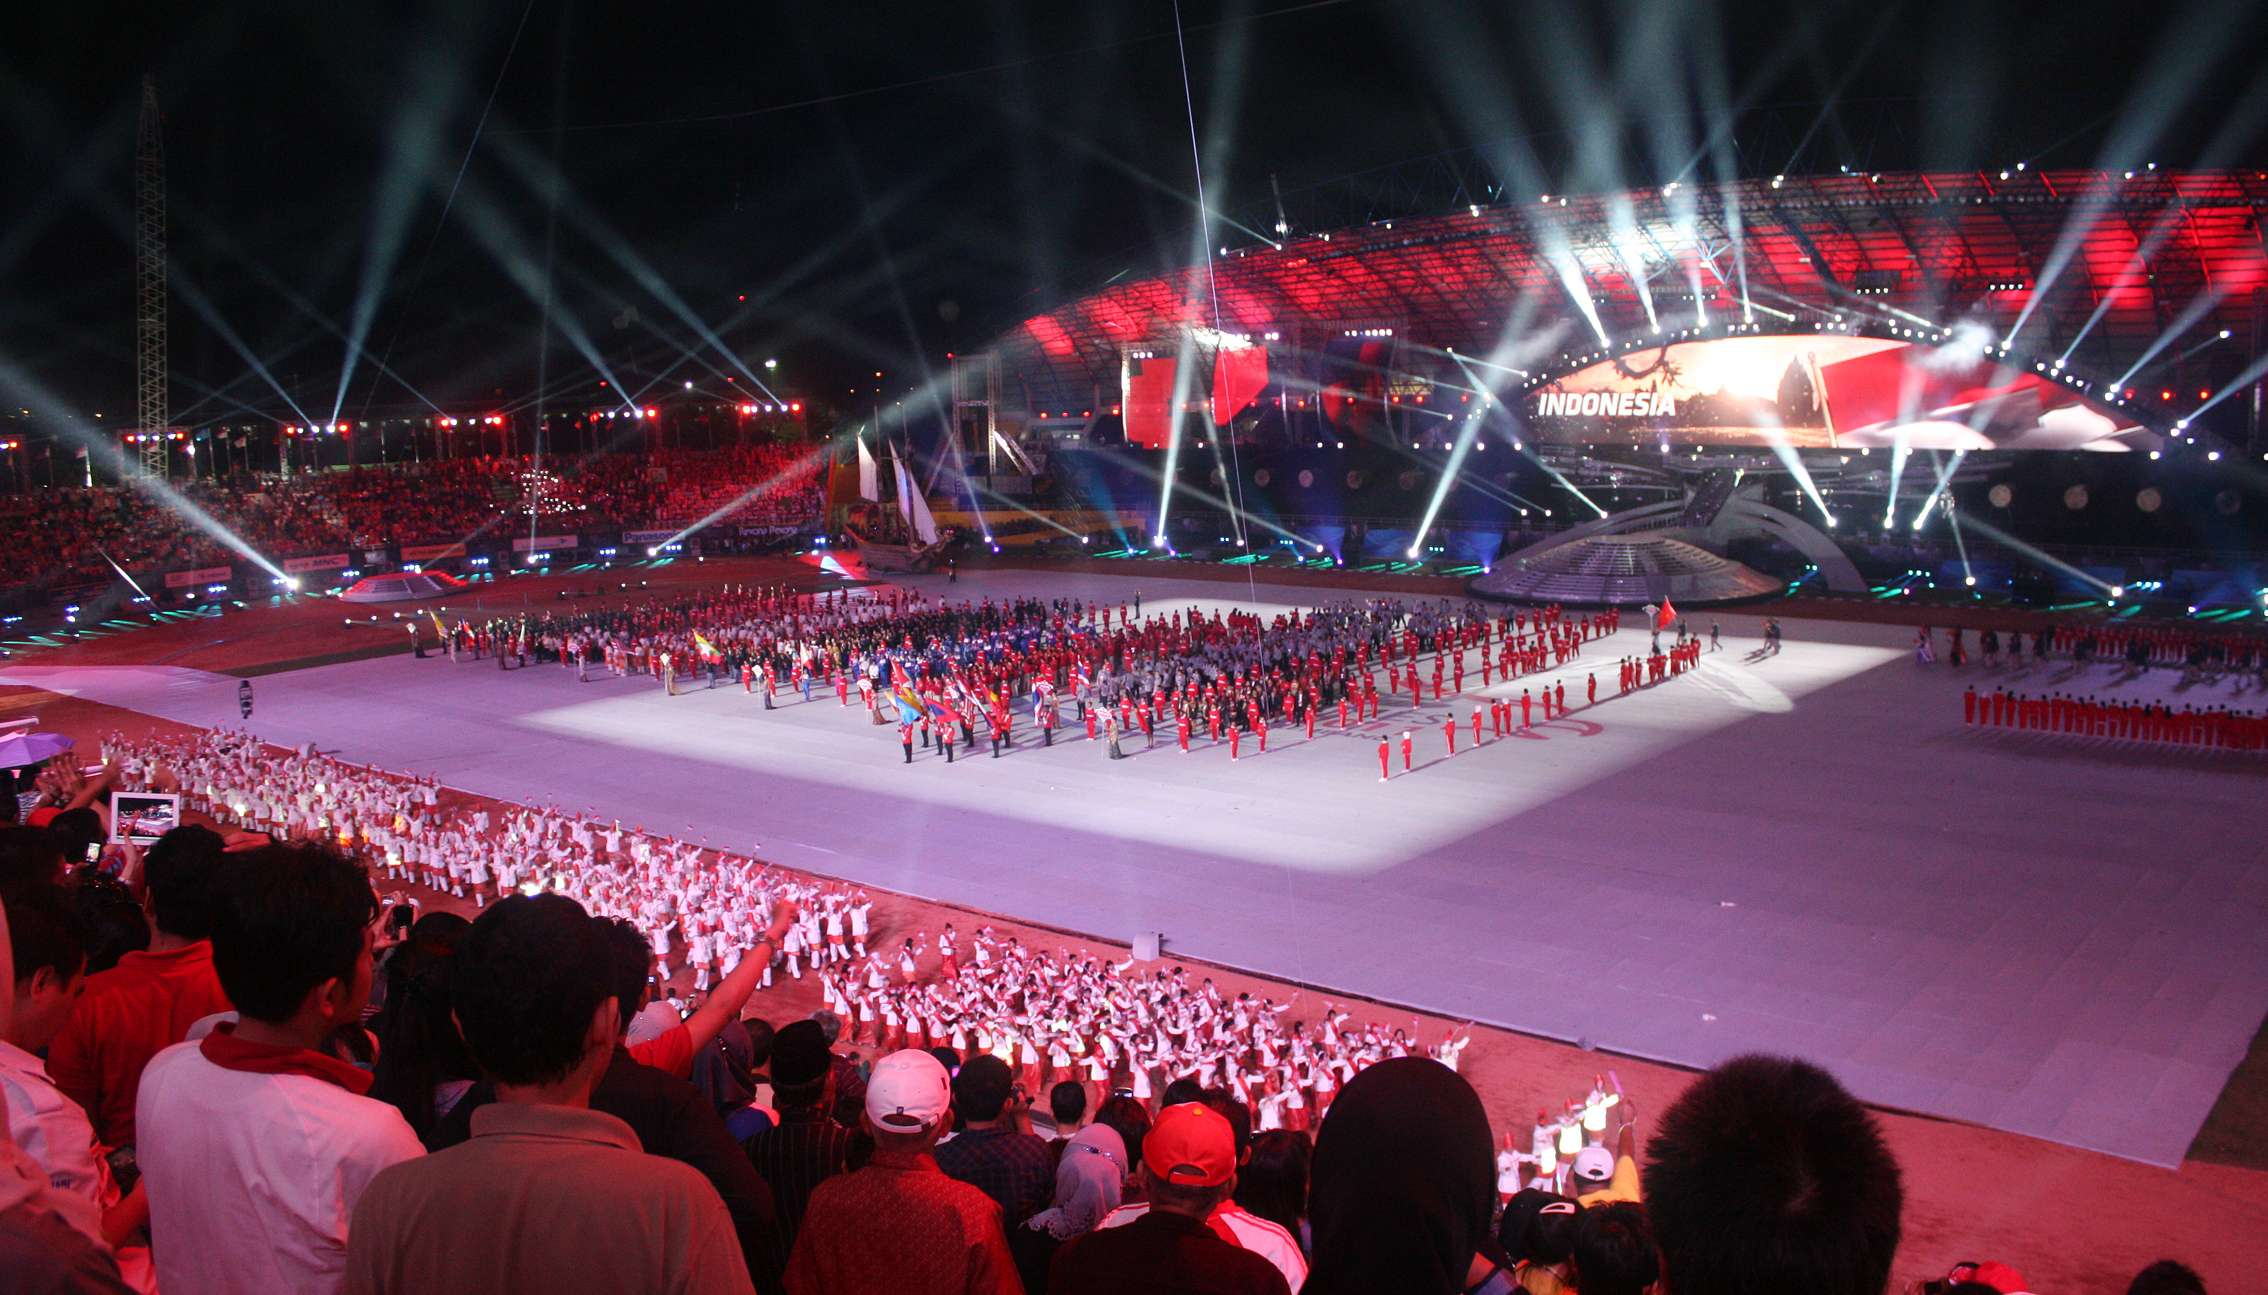 Athletes from host country Indonesia marching in front of honor podium during the 2011 Southeast Asia Games. (Image Credit: Gunawan Kartapranata/Wikimedia Commons)